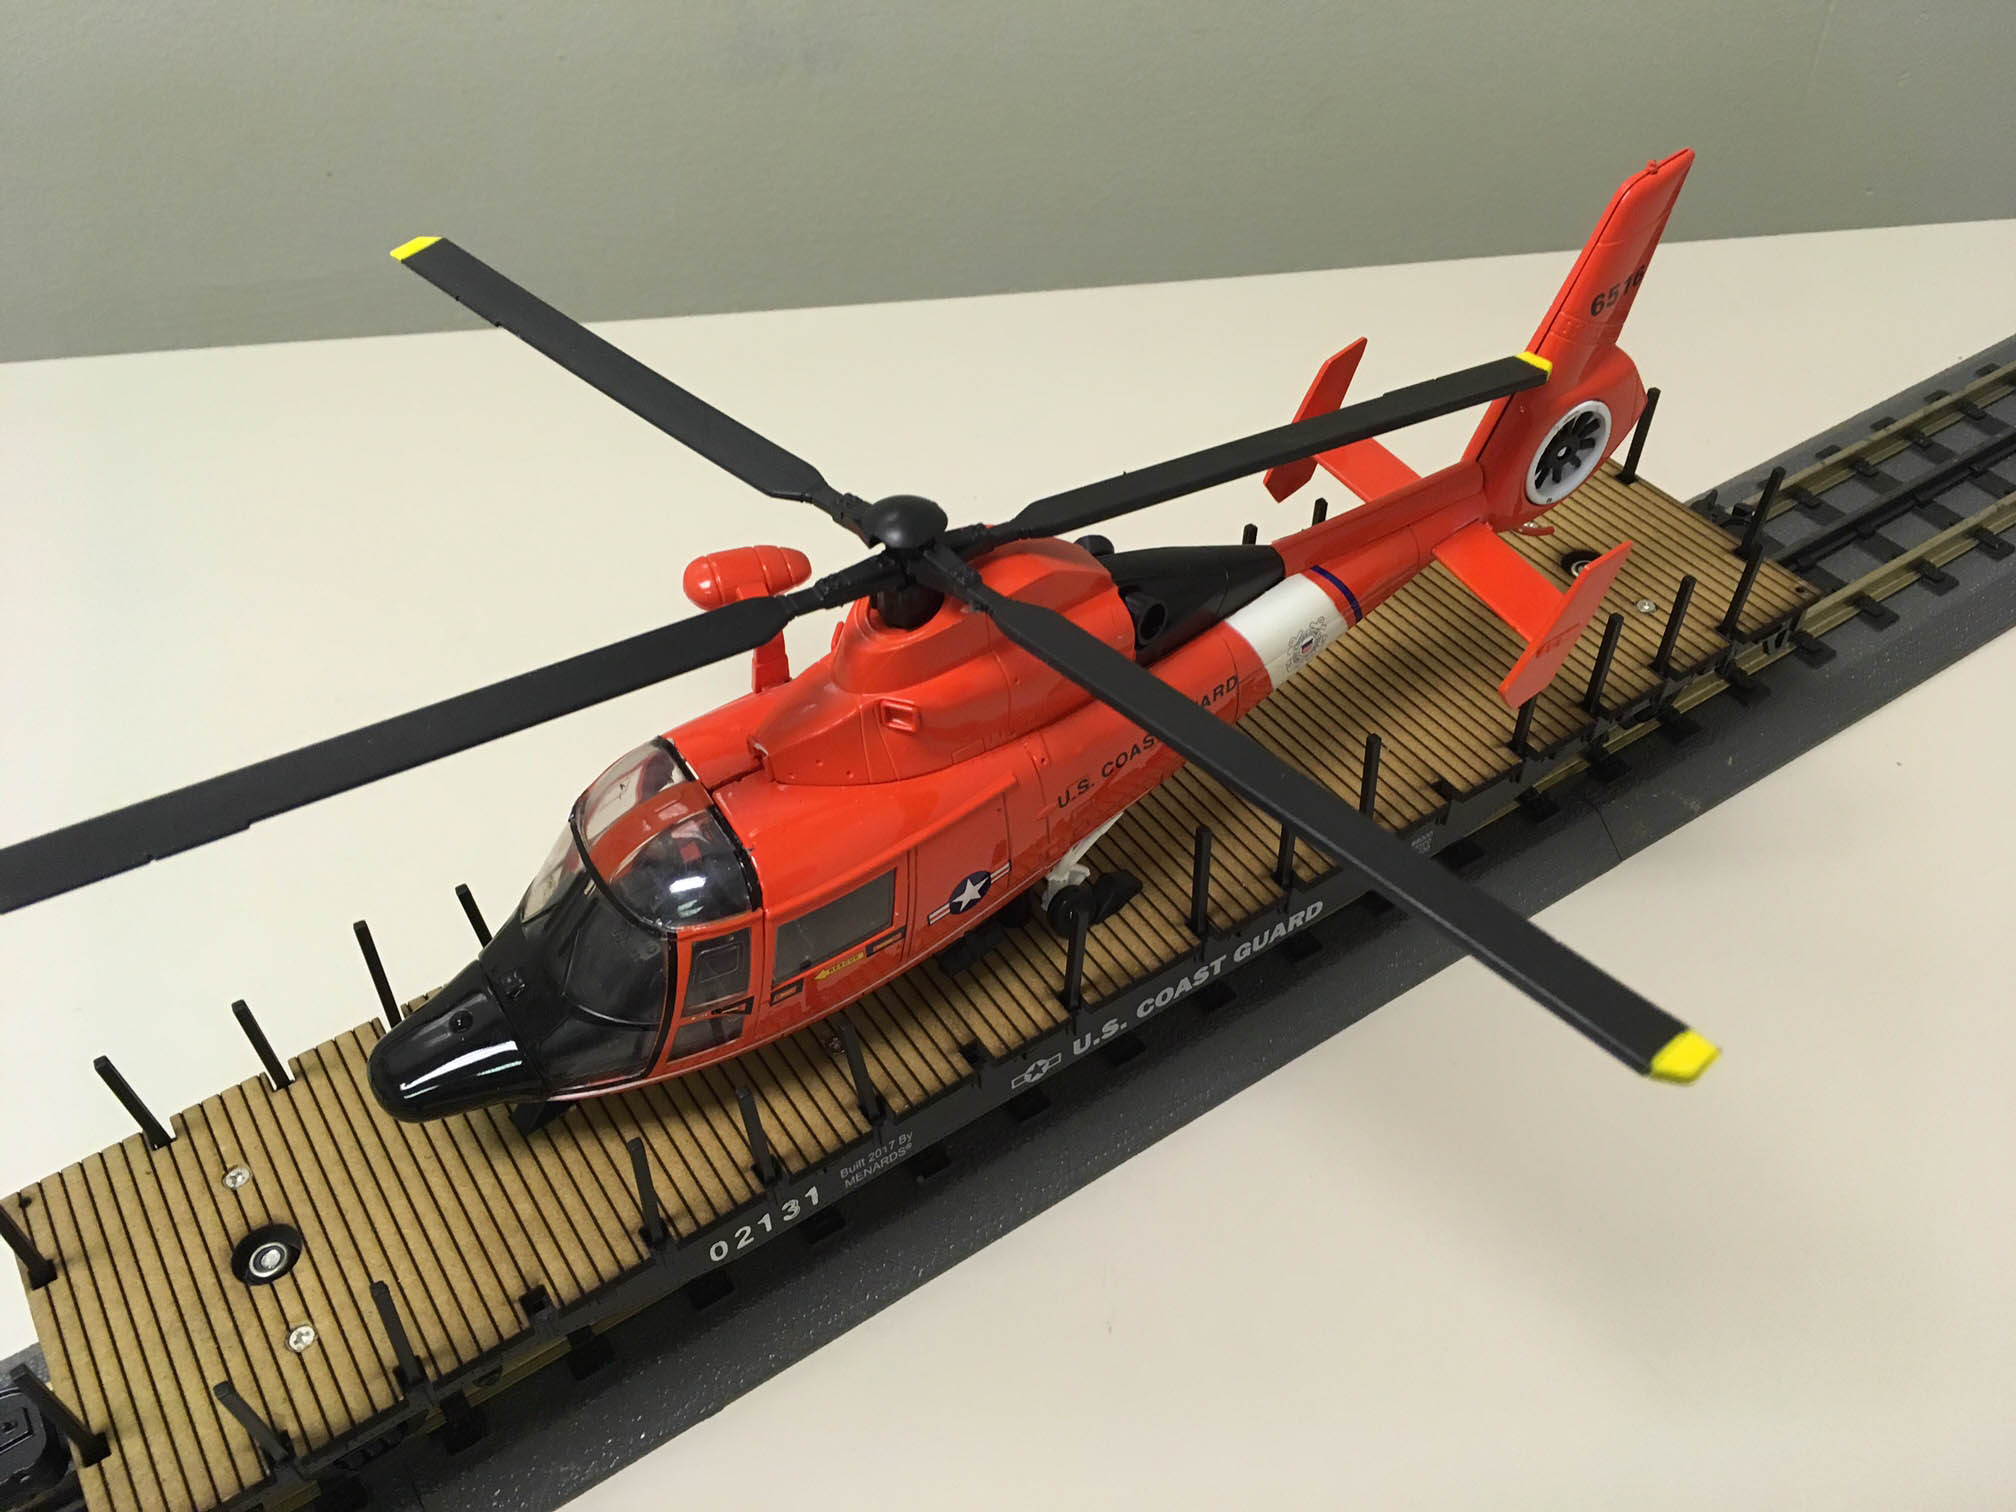 Sea Hunt: Flatcar with Coast Guard helicopter load from Menards